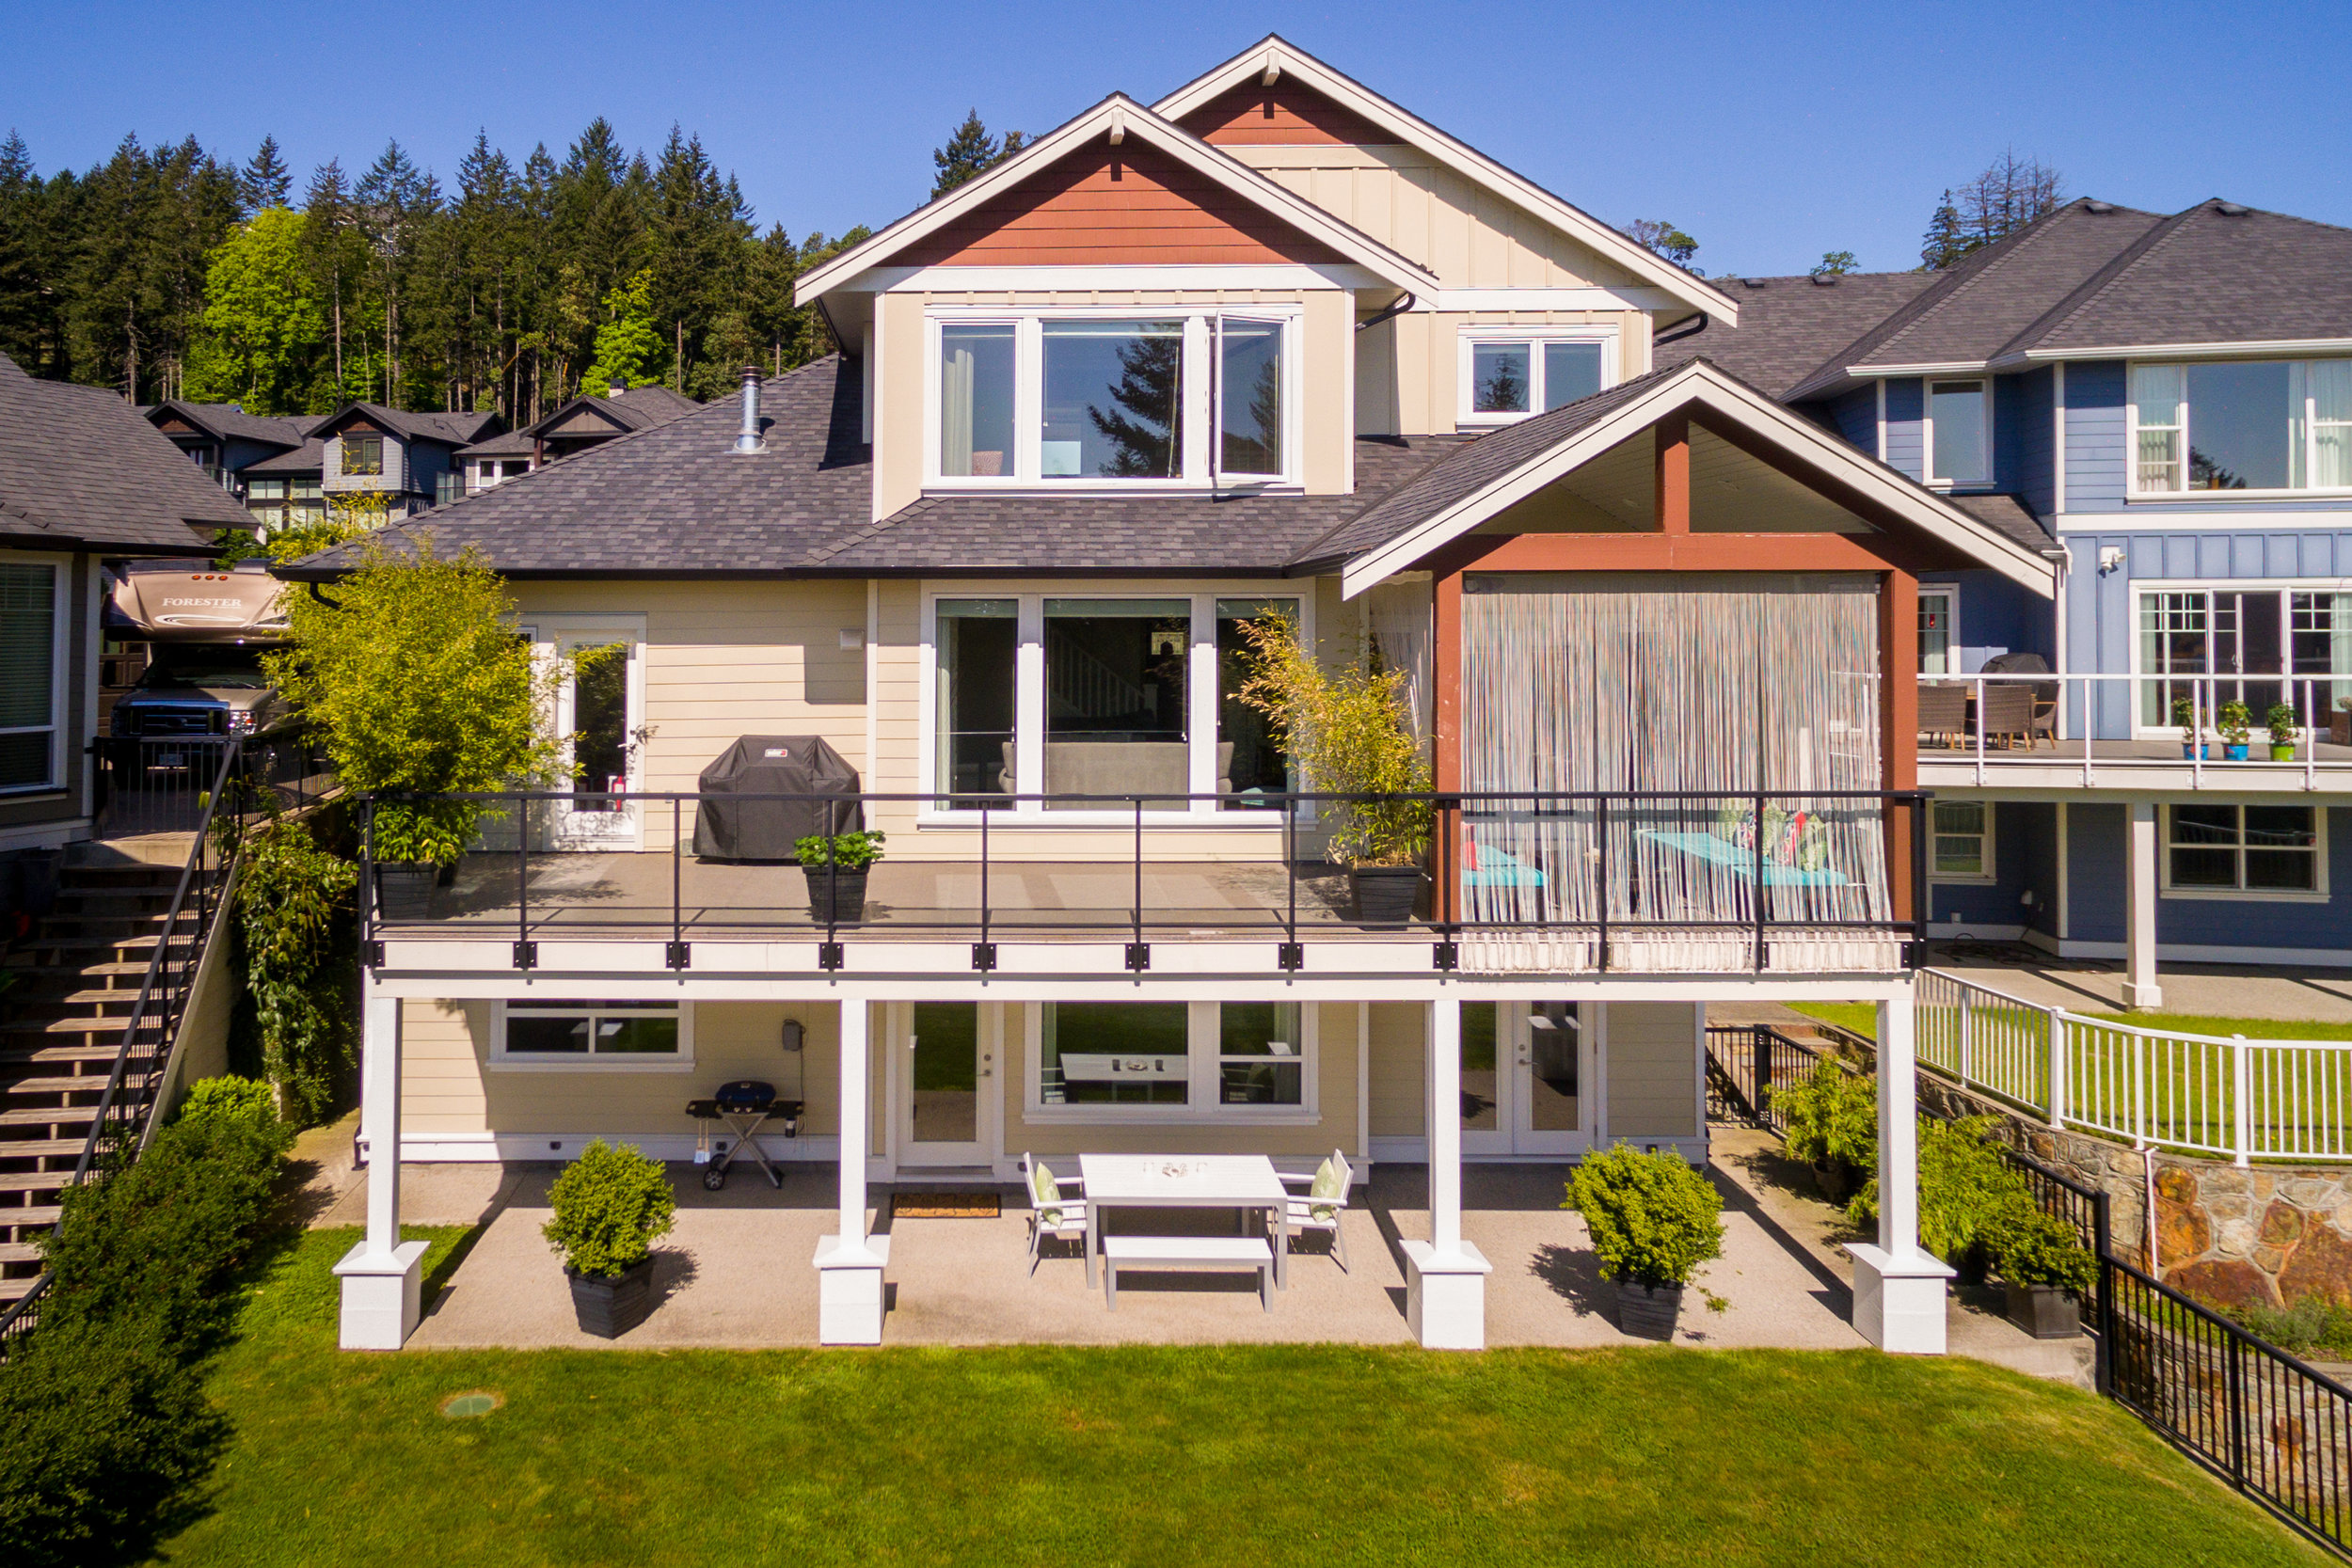 Photography - The need for professional photography in today's real estate market is imperative for success. Online listing photos are often viewed before contacting an agent and viewing a property.